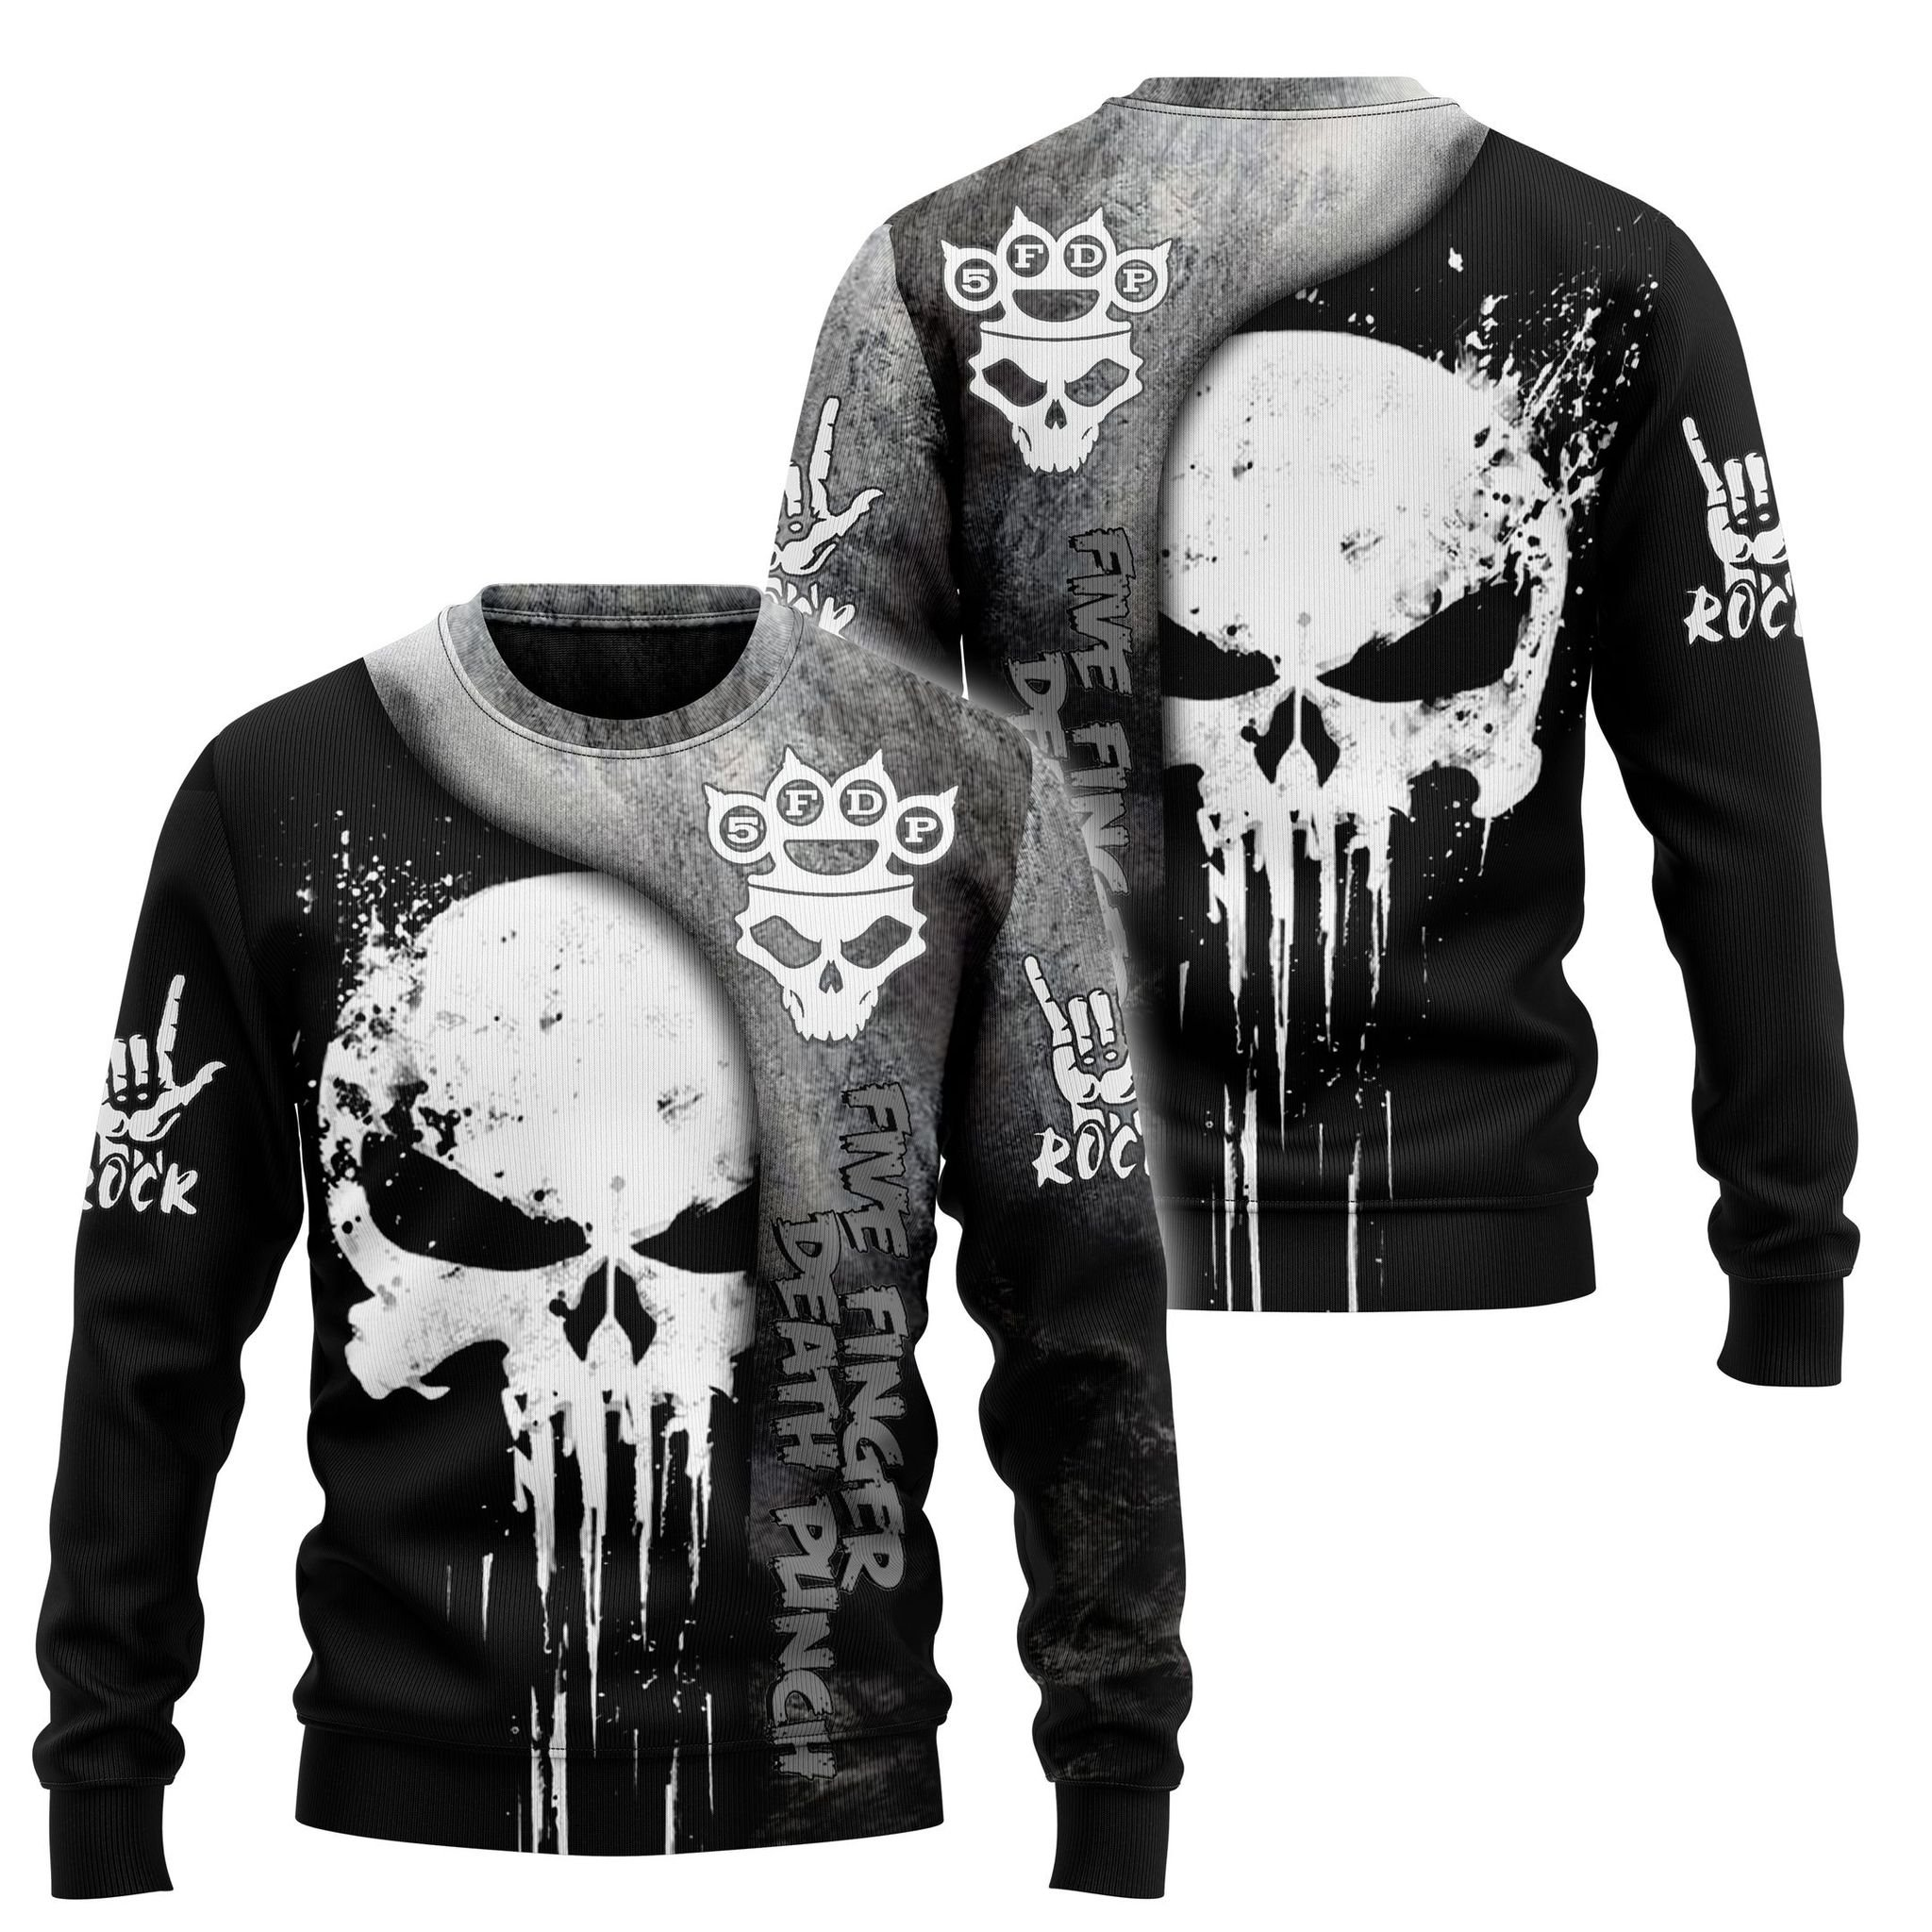 Five finger death punch skull 3d hoodie, shirt - LIMITED EDITION